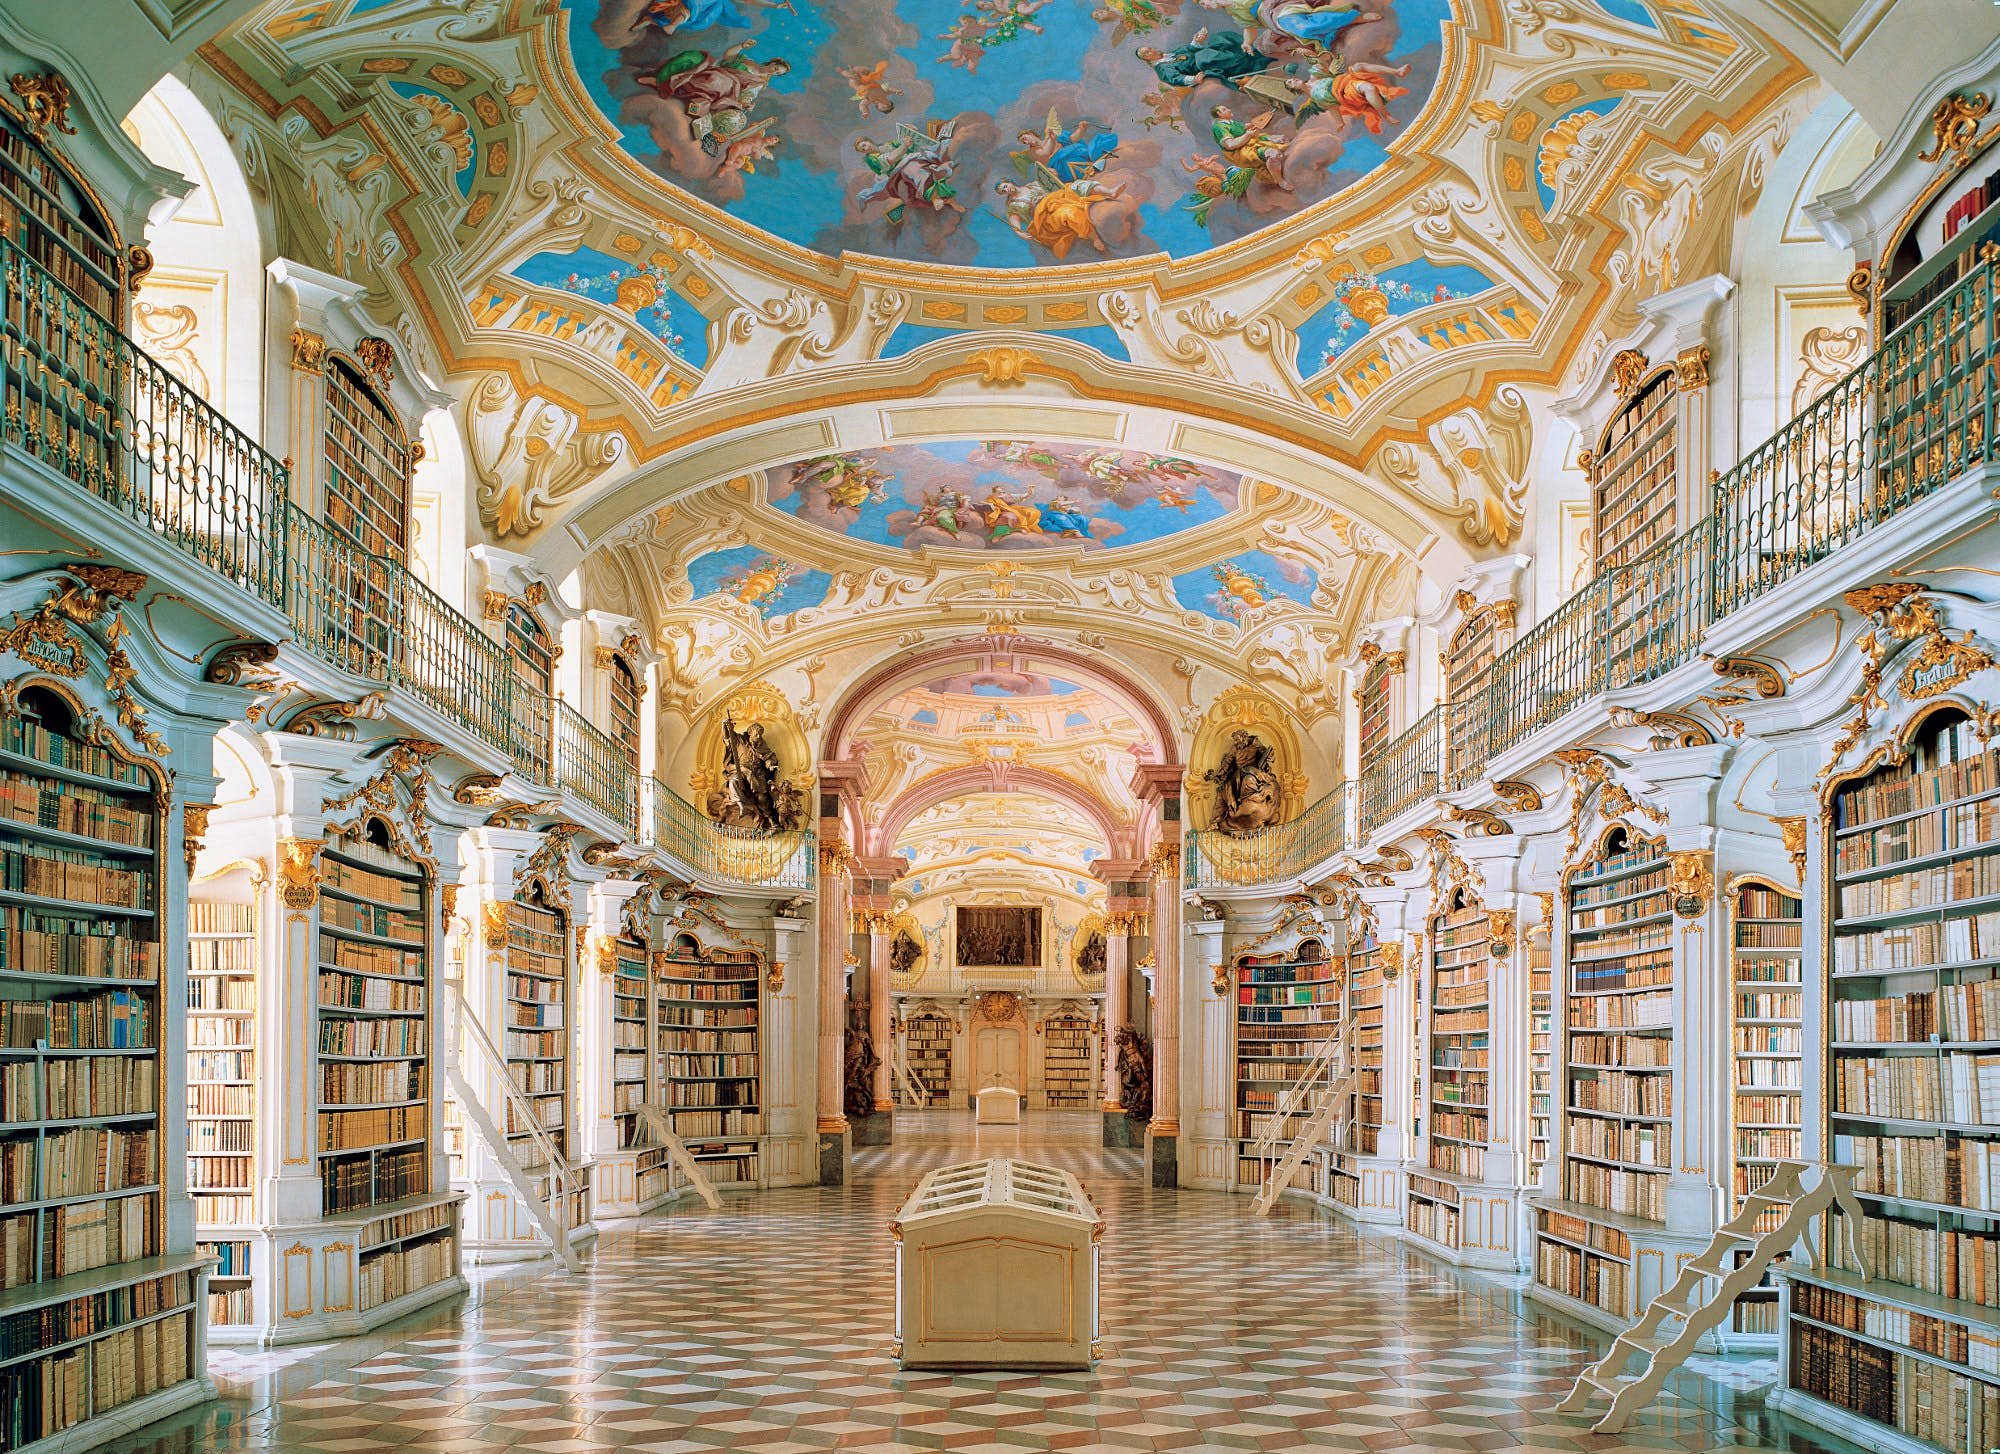 A long hall is supported by rectangular pillars that double as bookcases, each edged with white and gilt baroque columns. A balcony rings the upper level of the columns, and overhead a white, blue and gilt ceiling is made up of vaults and architectural flare.